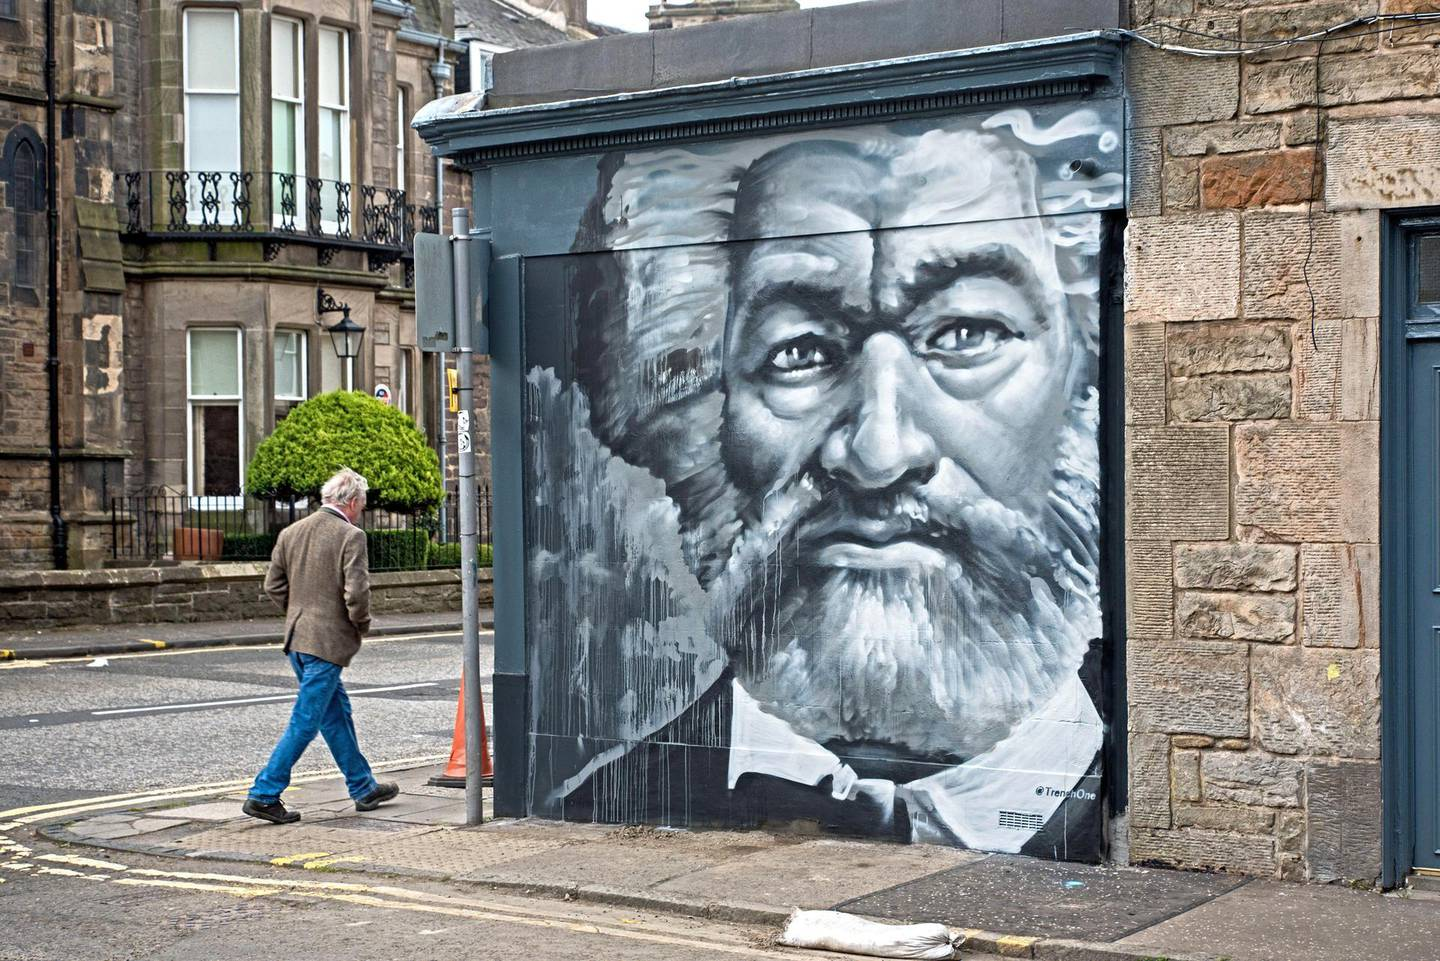 2CX0JXW Portrait of Frederick Douglass (1818-95),  an American social reformer, abolitionist and statesman by Ross Blair on a wall in Edinburgh.